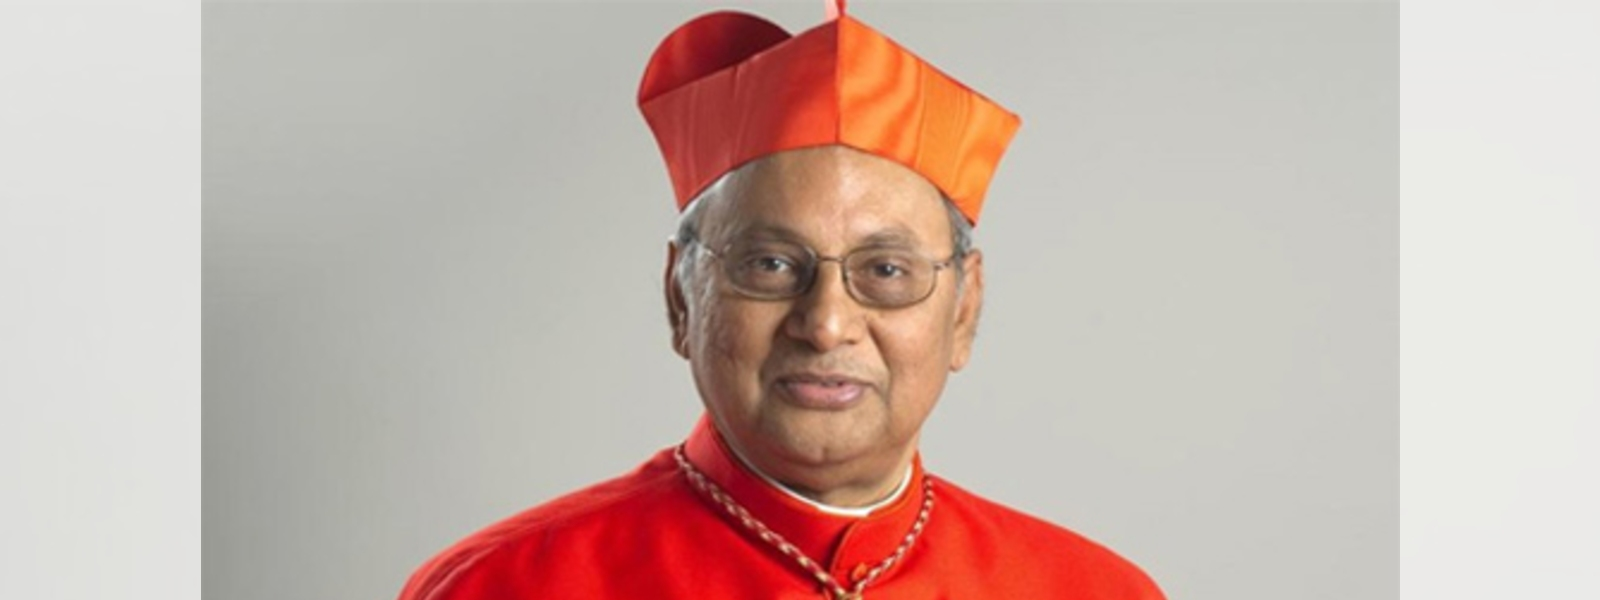 Cardinal speaks of need to do what is right